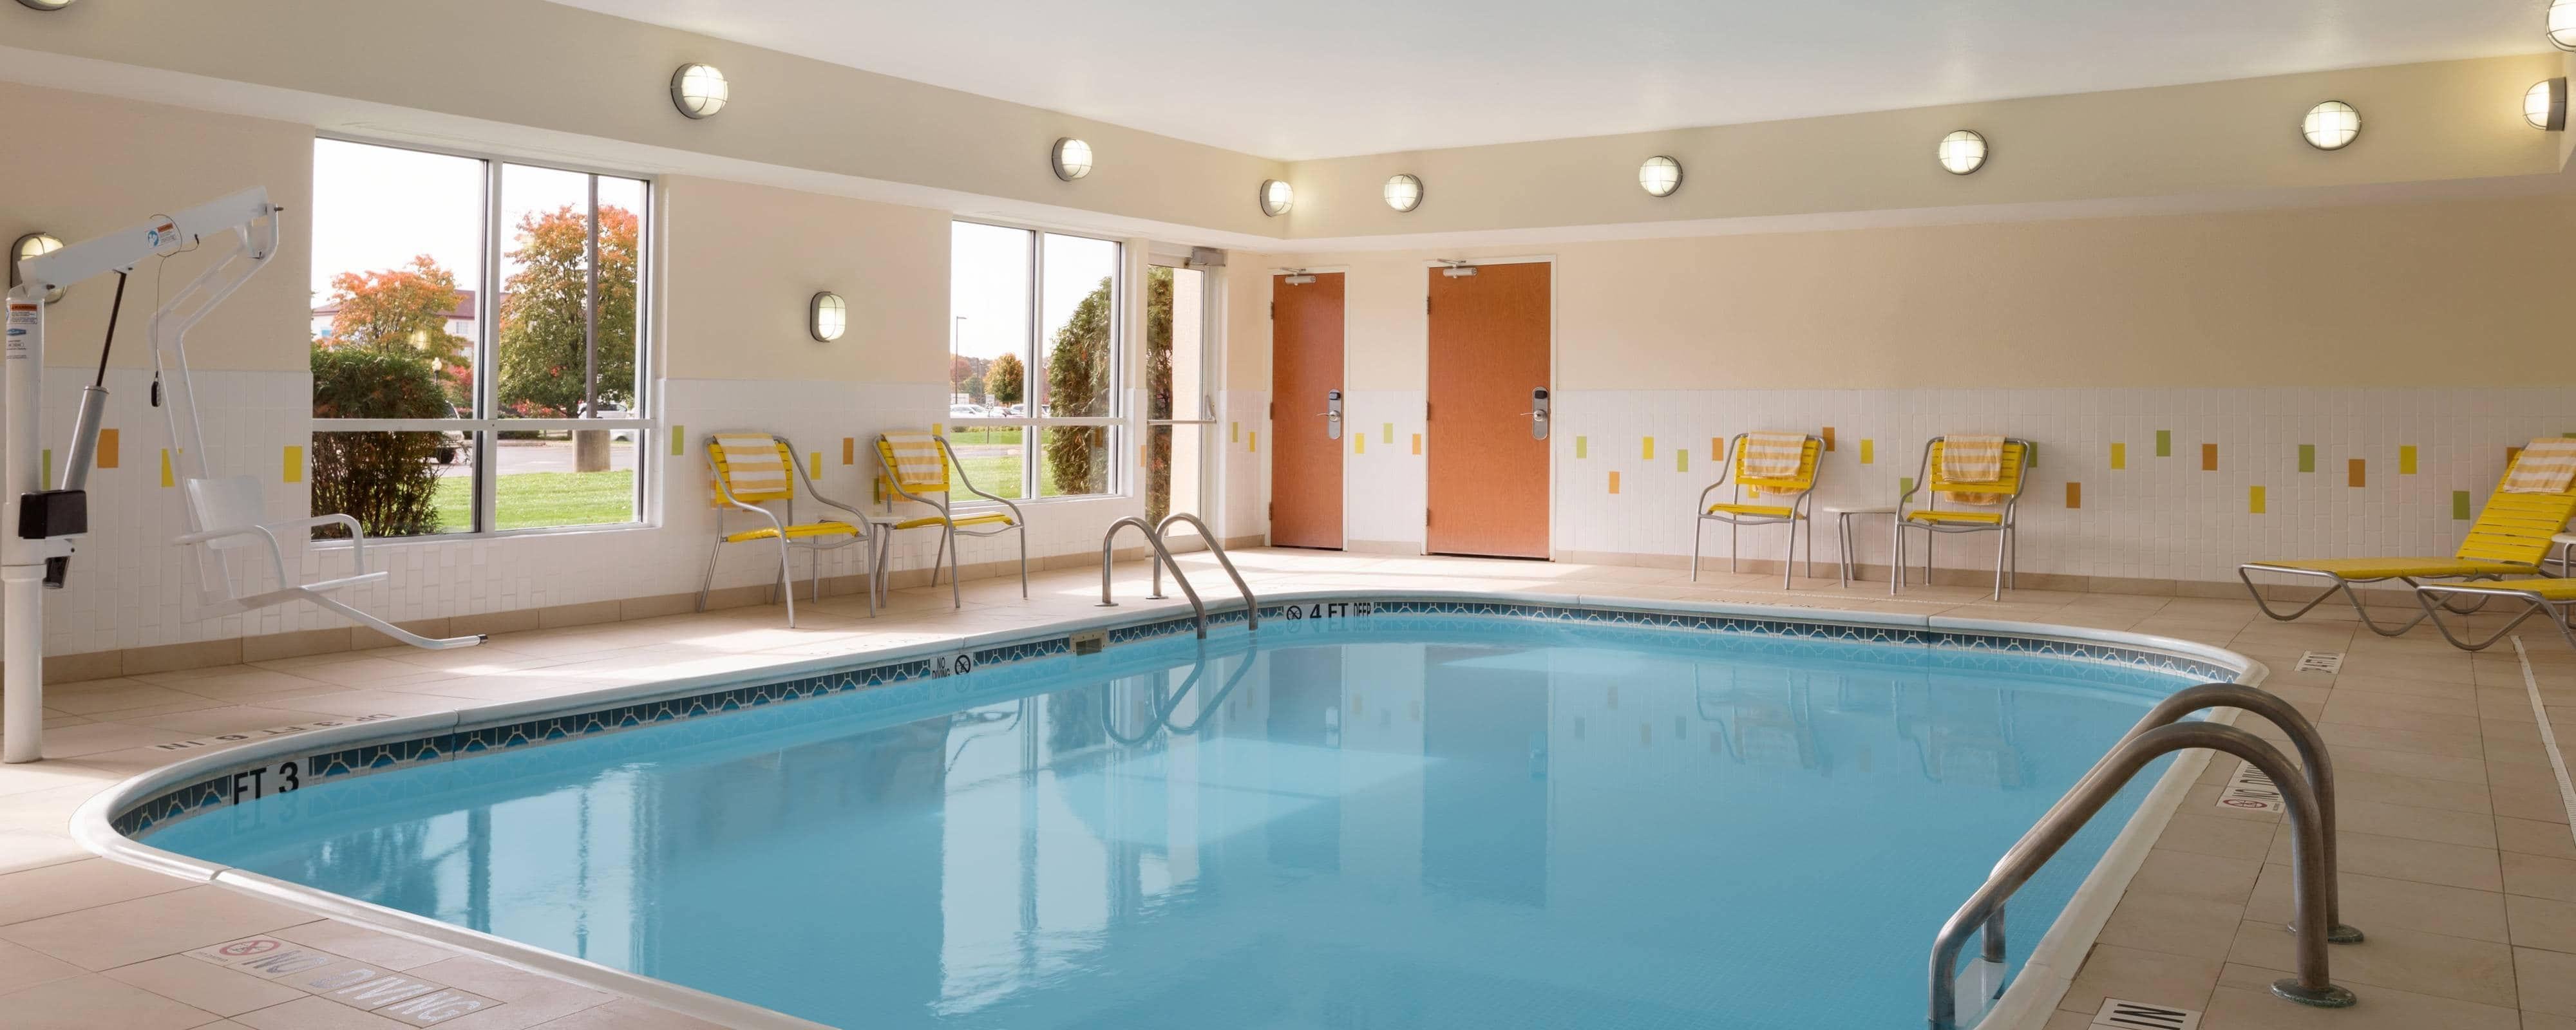 Hotel con piscina cubierta en Youngstown